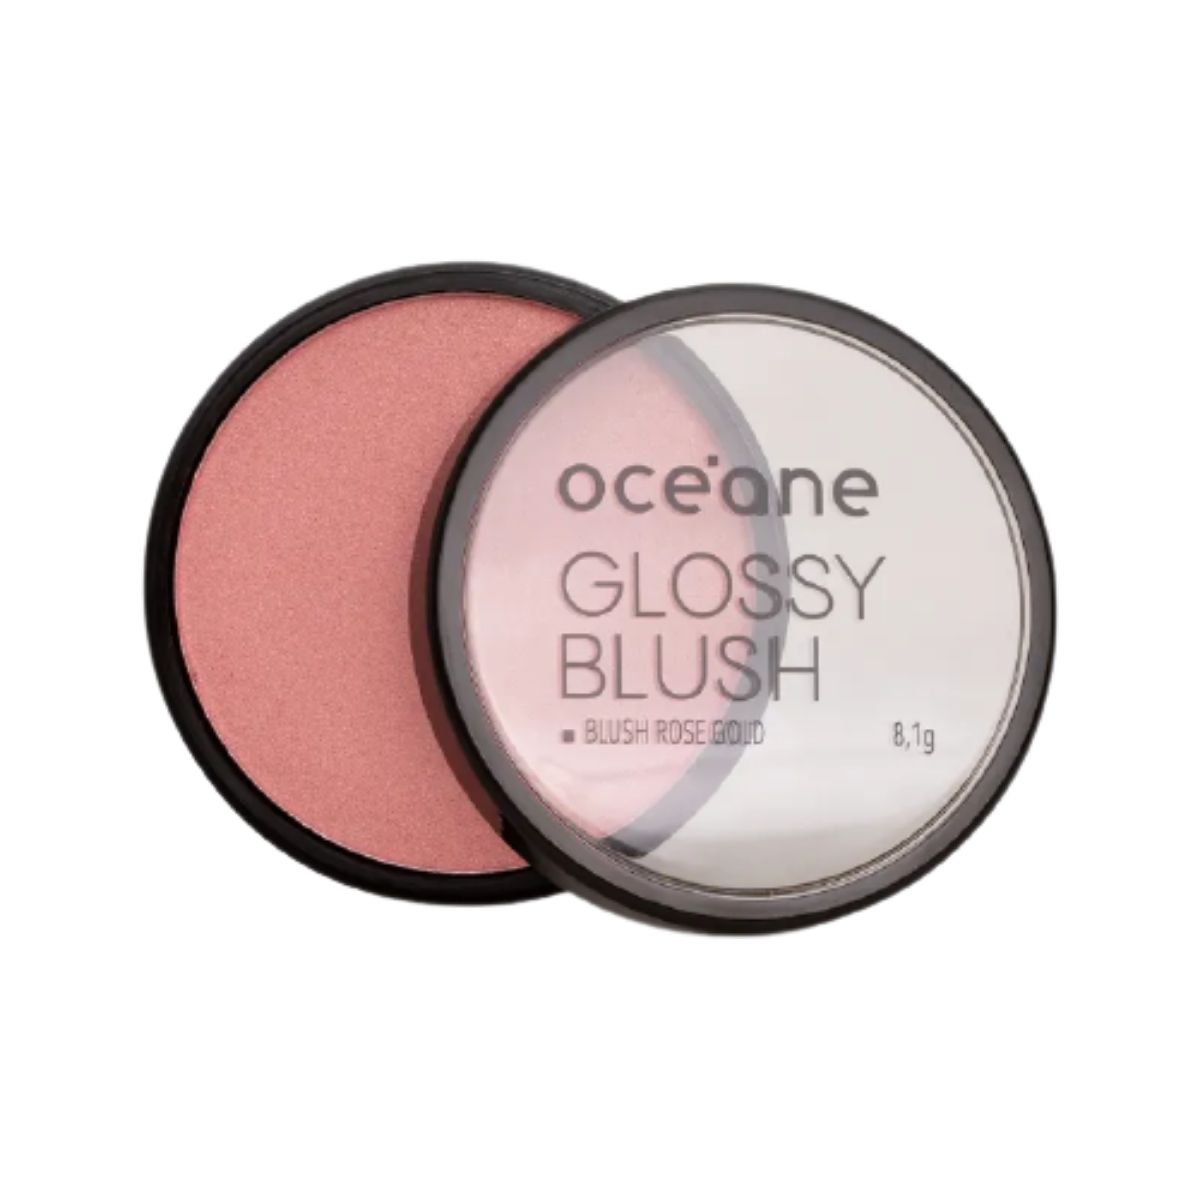 Blush Your Face Glossy Coral - Blush Cintilante Oceane